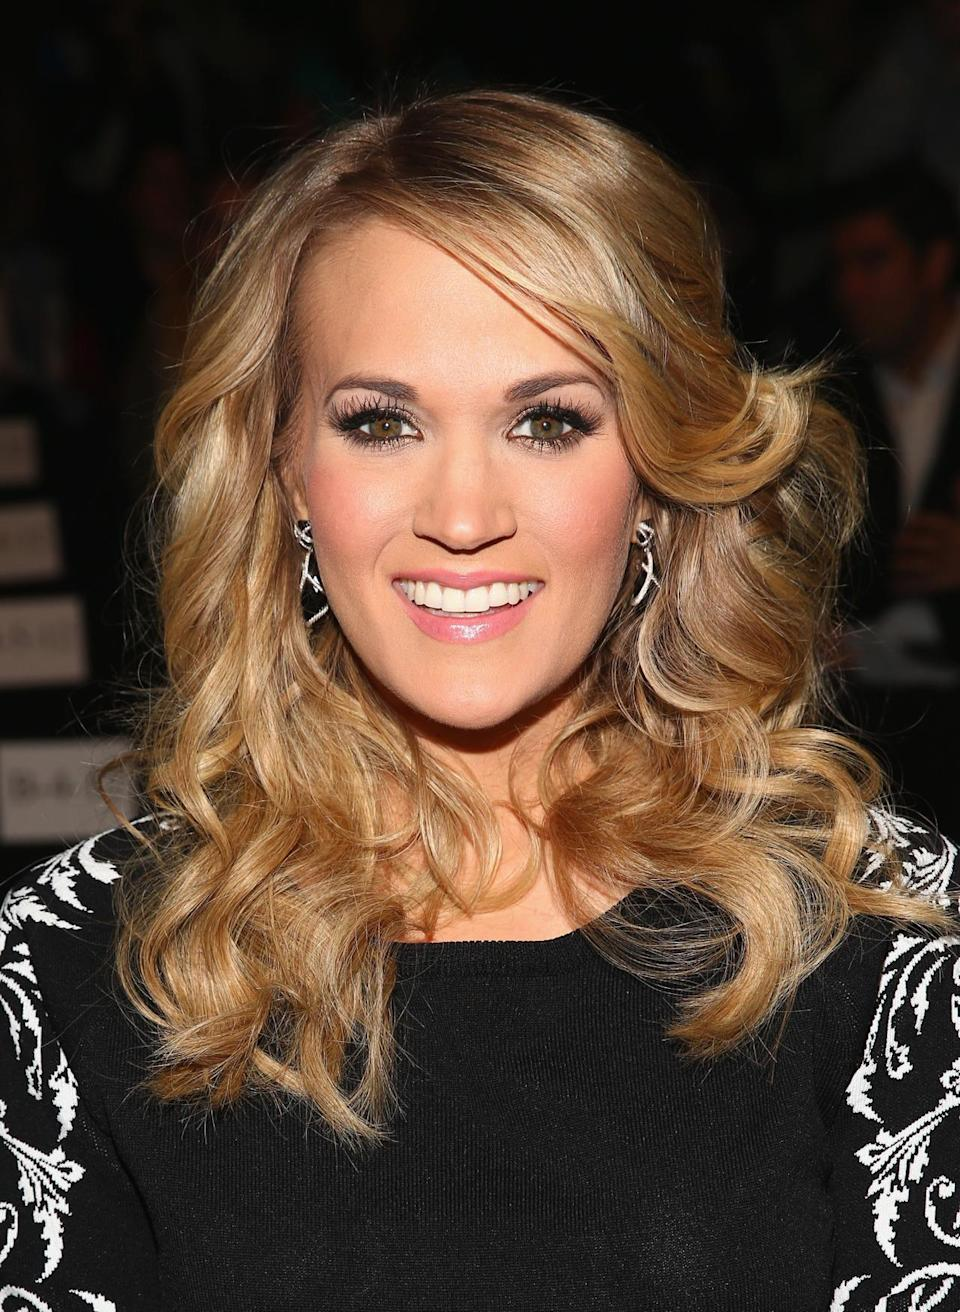 <p>Why mess with perfection? Carrie Underwood still rocks voluminous waves and pink-toned makeup. <i>(Photo: Getty Images)</i></p>